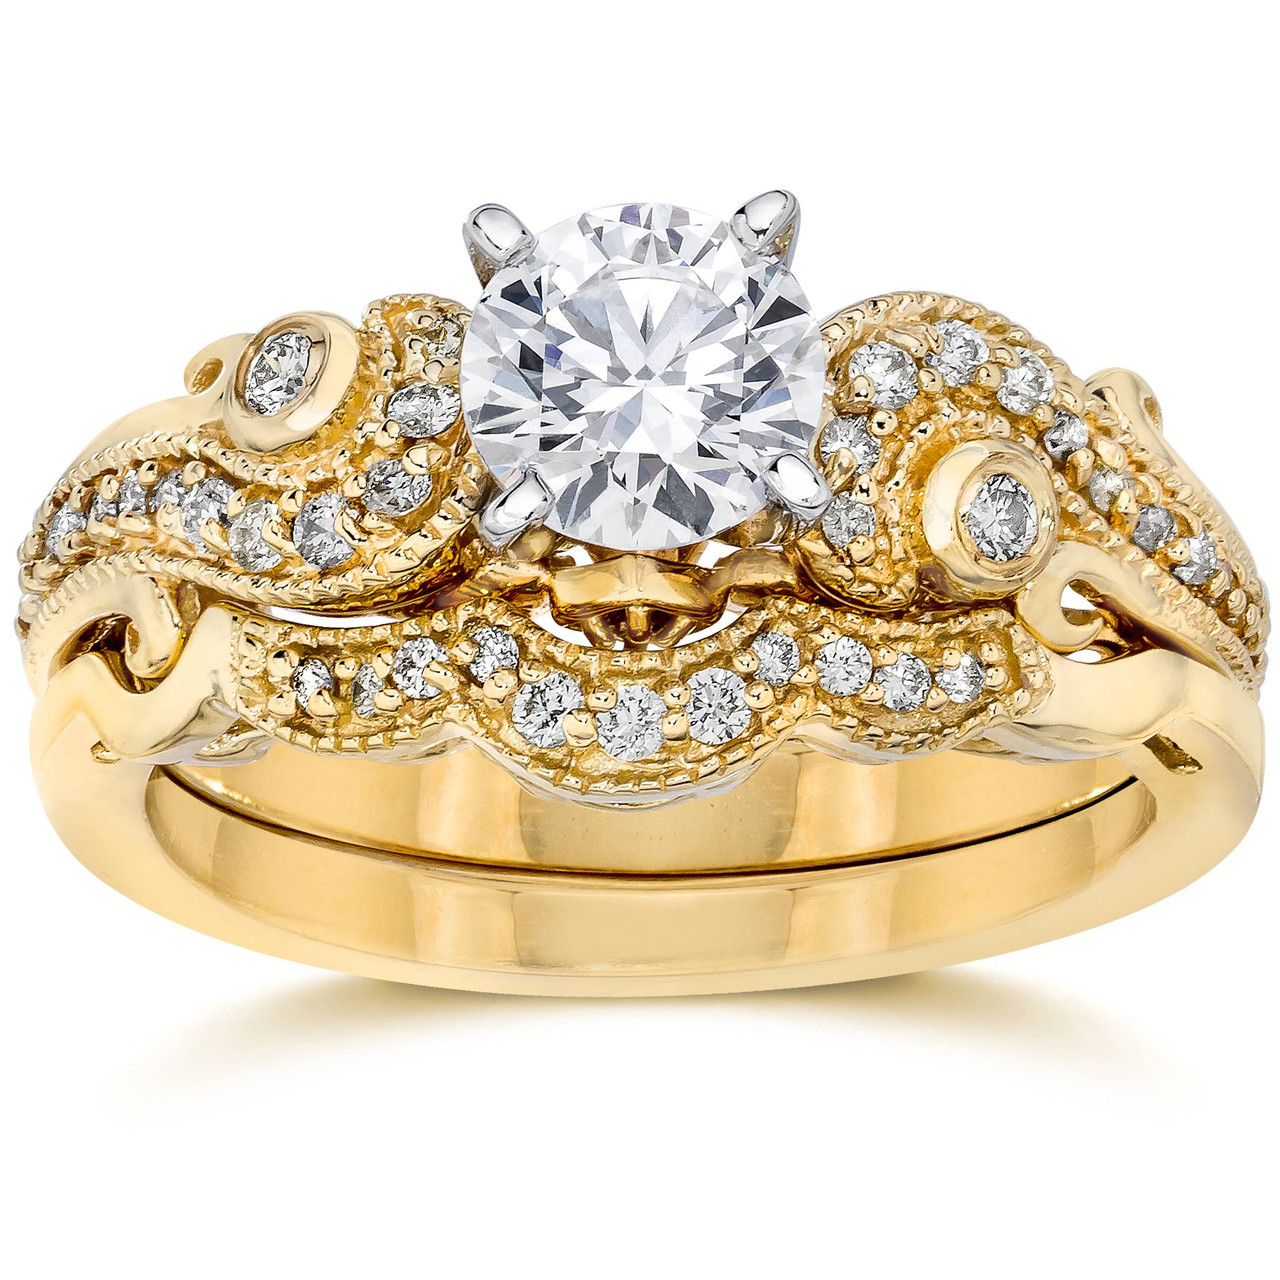 Emery 34Ct Vintage Diamond Engagement Wedding Ring Set 14K Yellow Gold